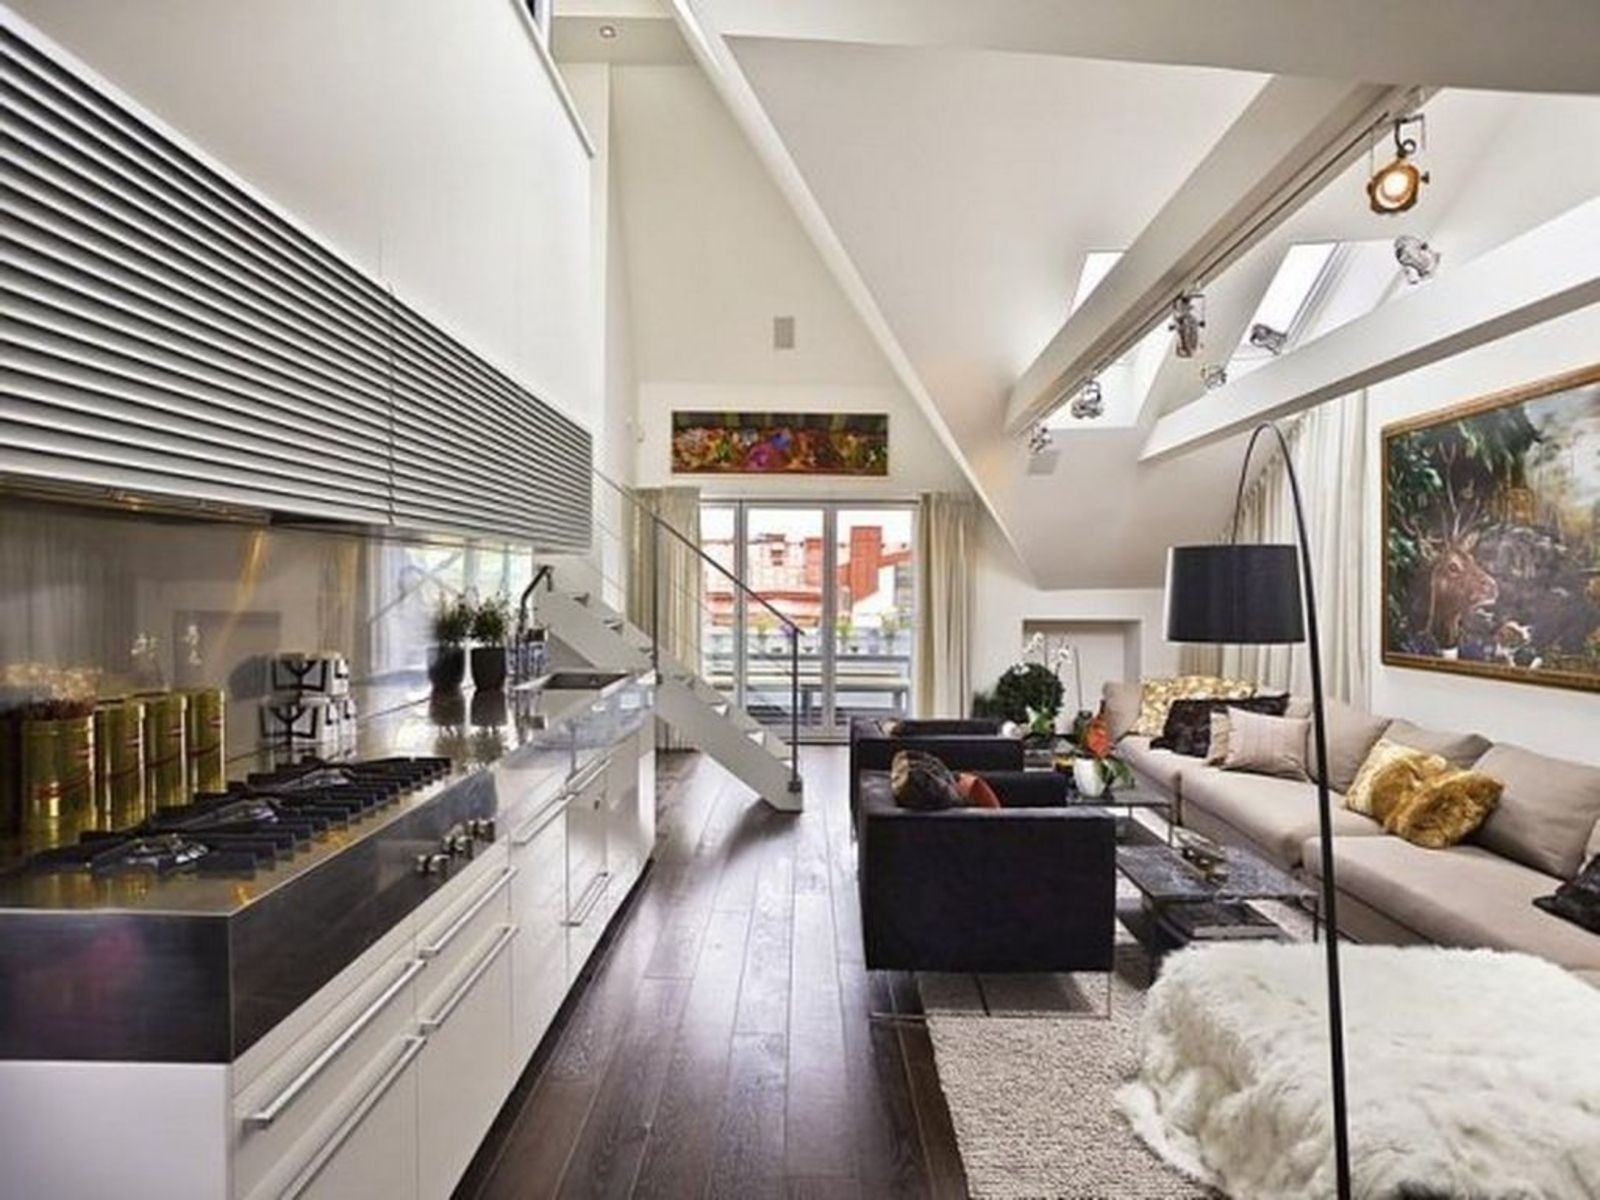 Interior Design Styles And Color Schemes For Home Decorating Hgtv ...  Minimalist Home Design Ideas And Inspiration Black Gold Office Interior  Design ...